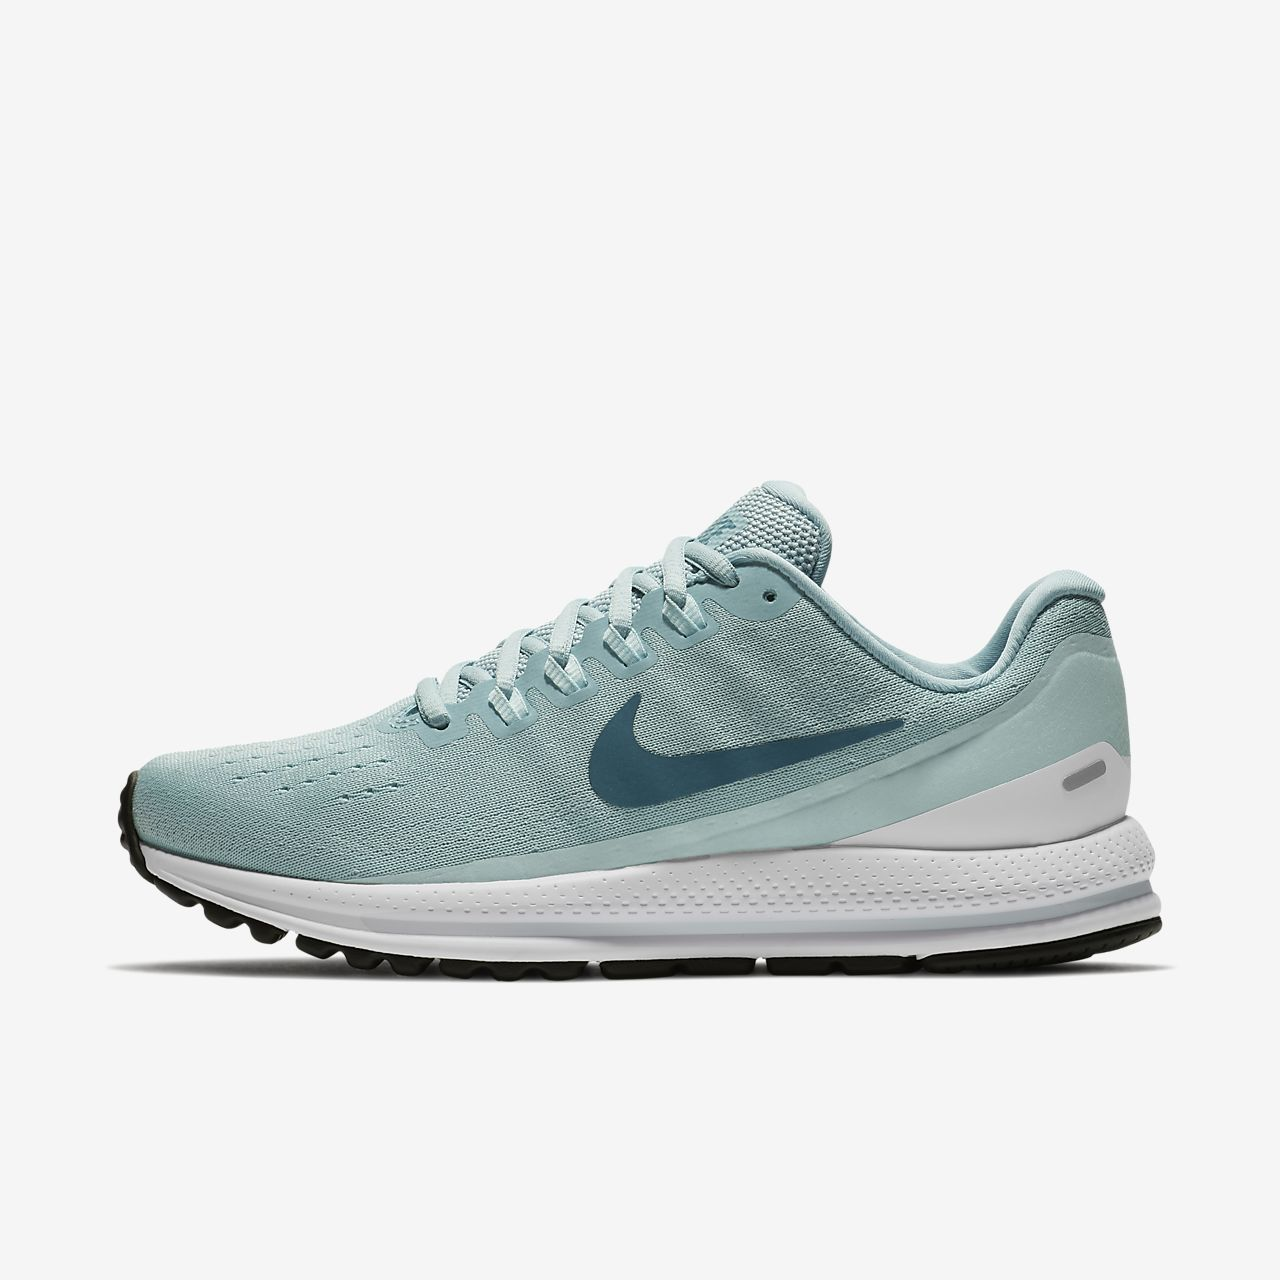 bae517f8137d Nike Air Zoom Vomero 13 Women s Running Shoe. Nike.com BE